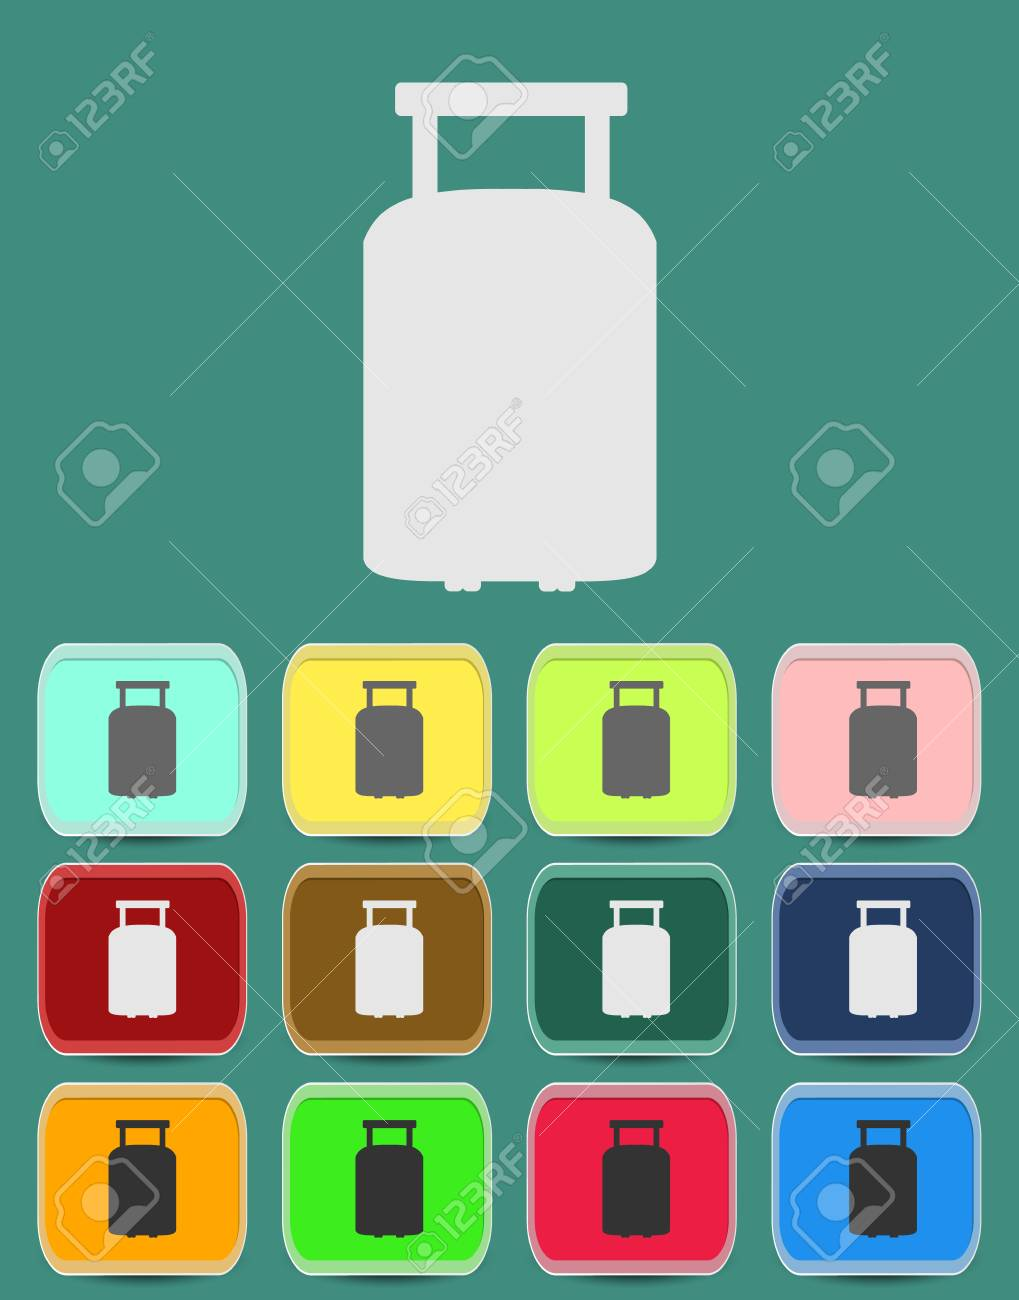 suitcase for travel icon Stock Vector - 29161028